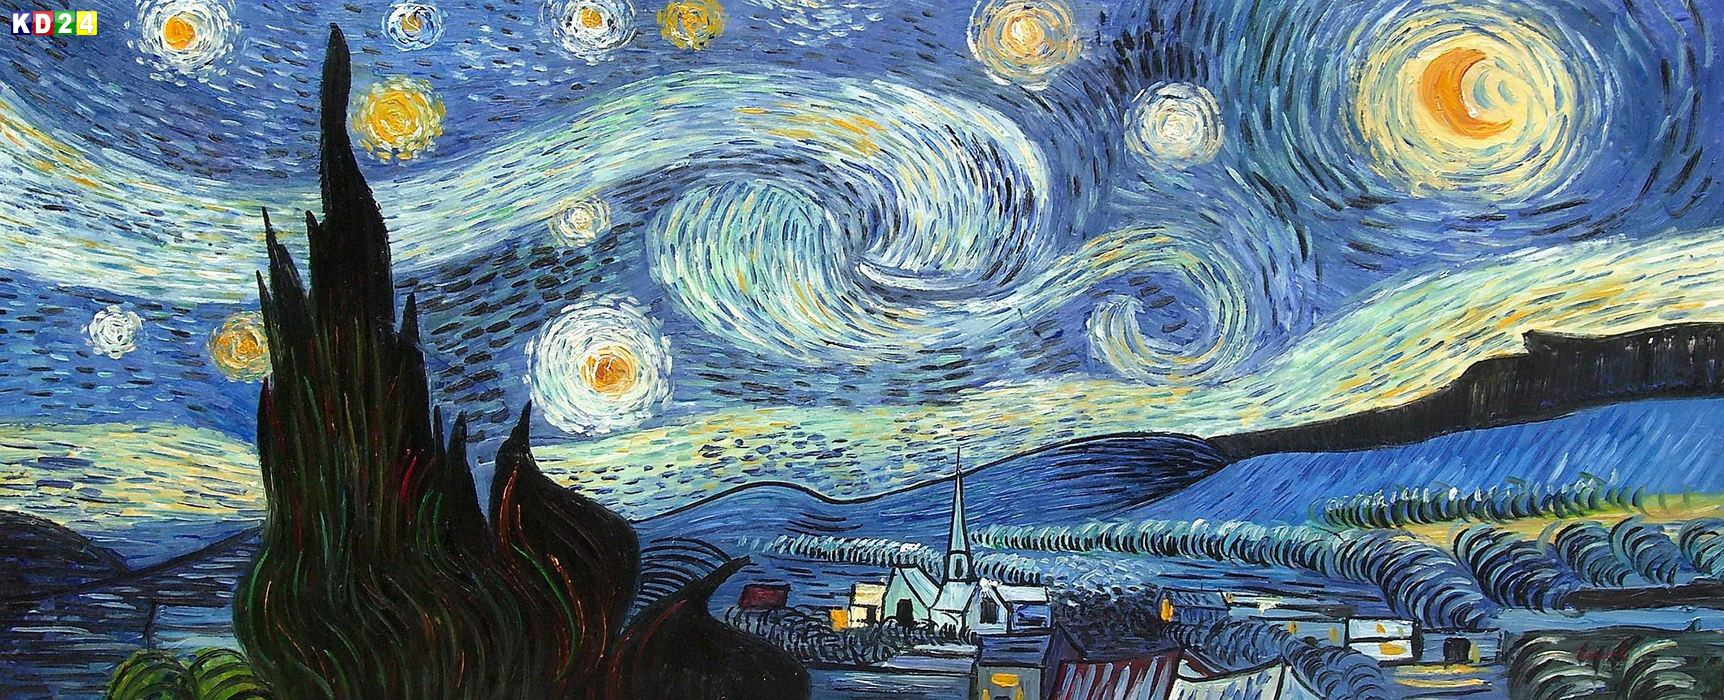 vincent van gogh sternennacht t81907 75x180cm meisterhaftes lgem lde ebay. Black Bedroom Furniture Sets. Home Design Ideas